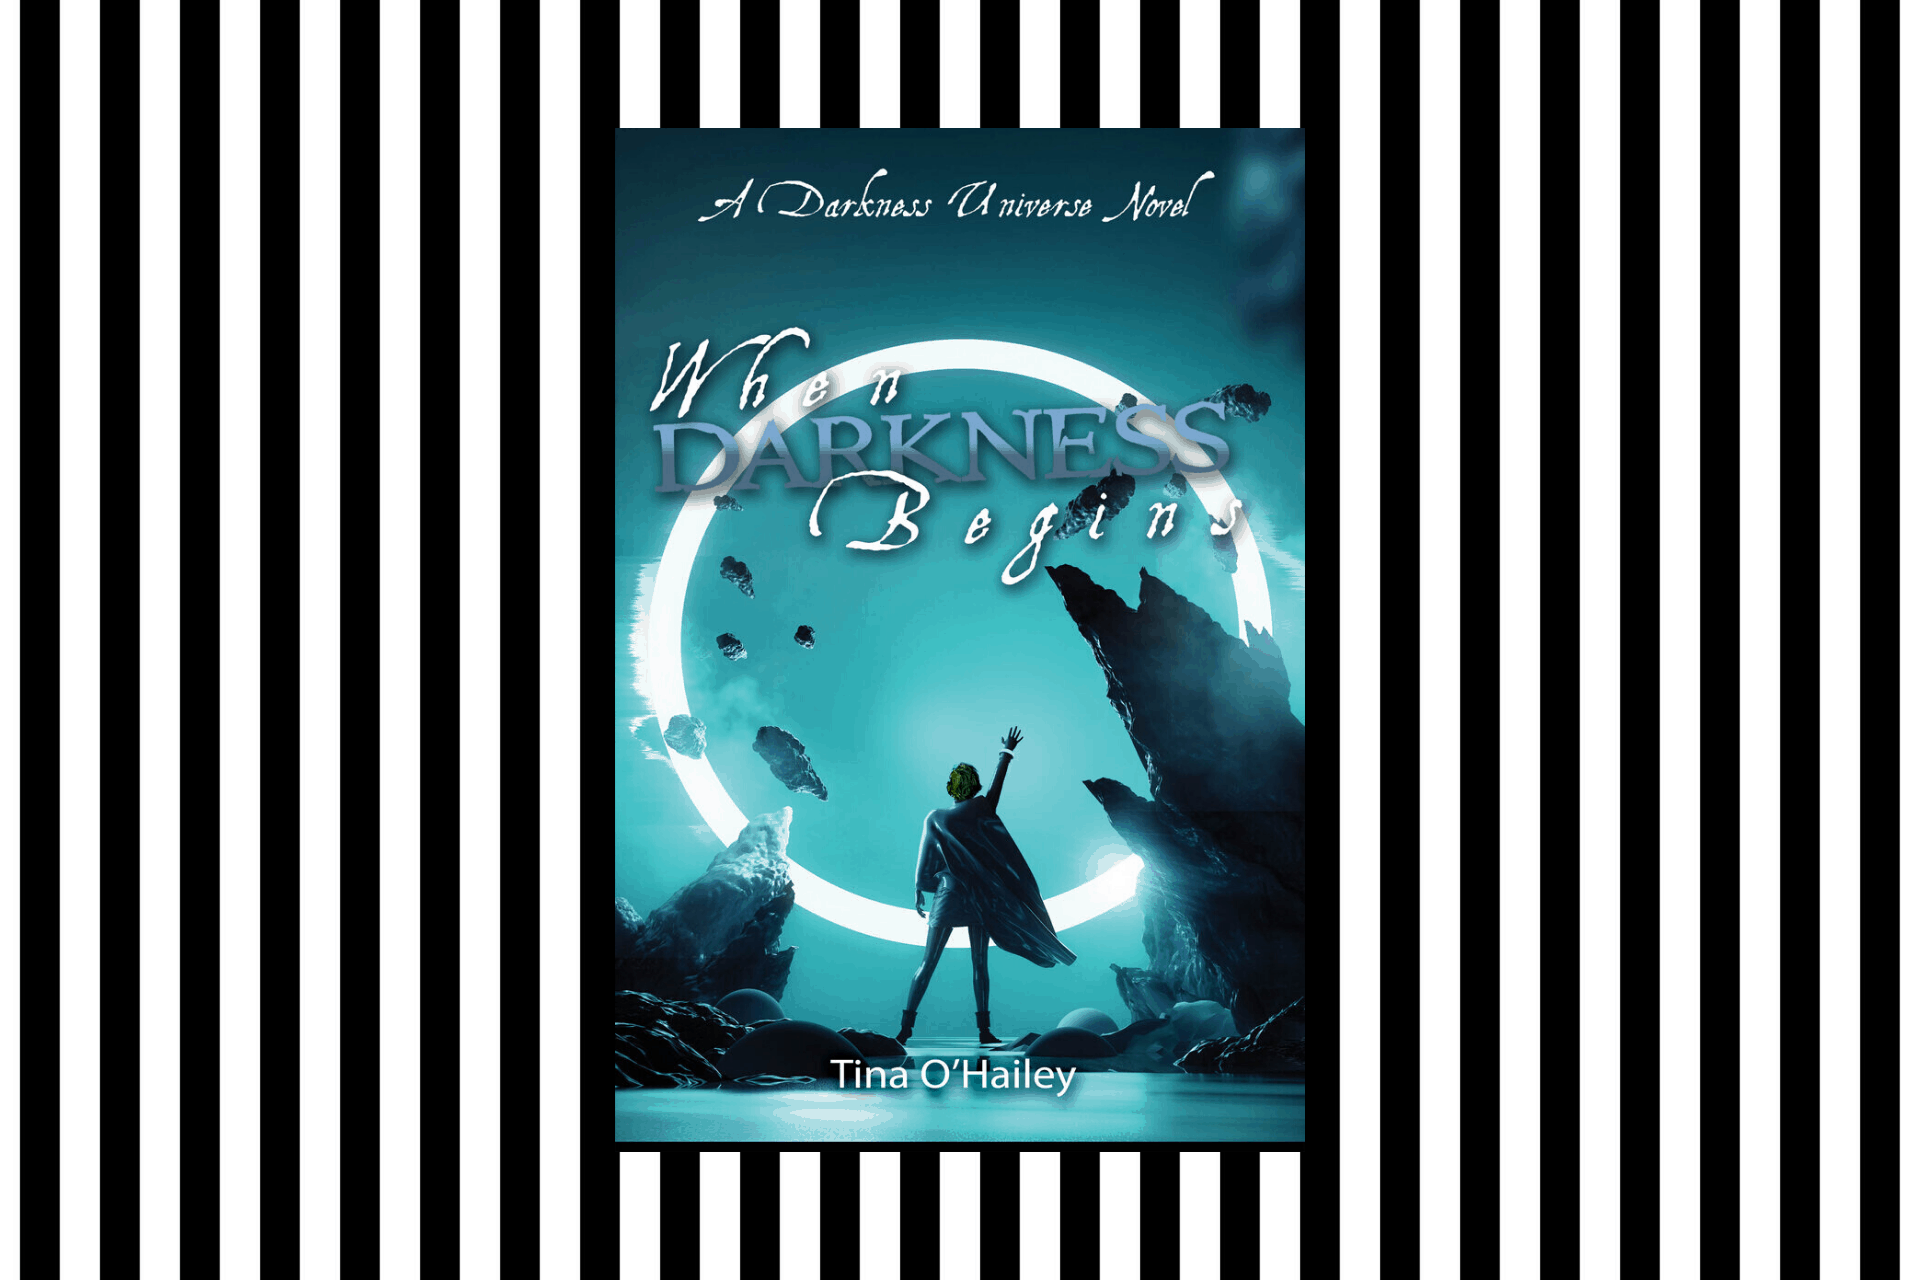 The cover of When Darkness Begins by Tina O'Hailey